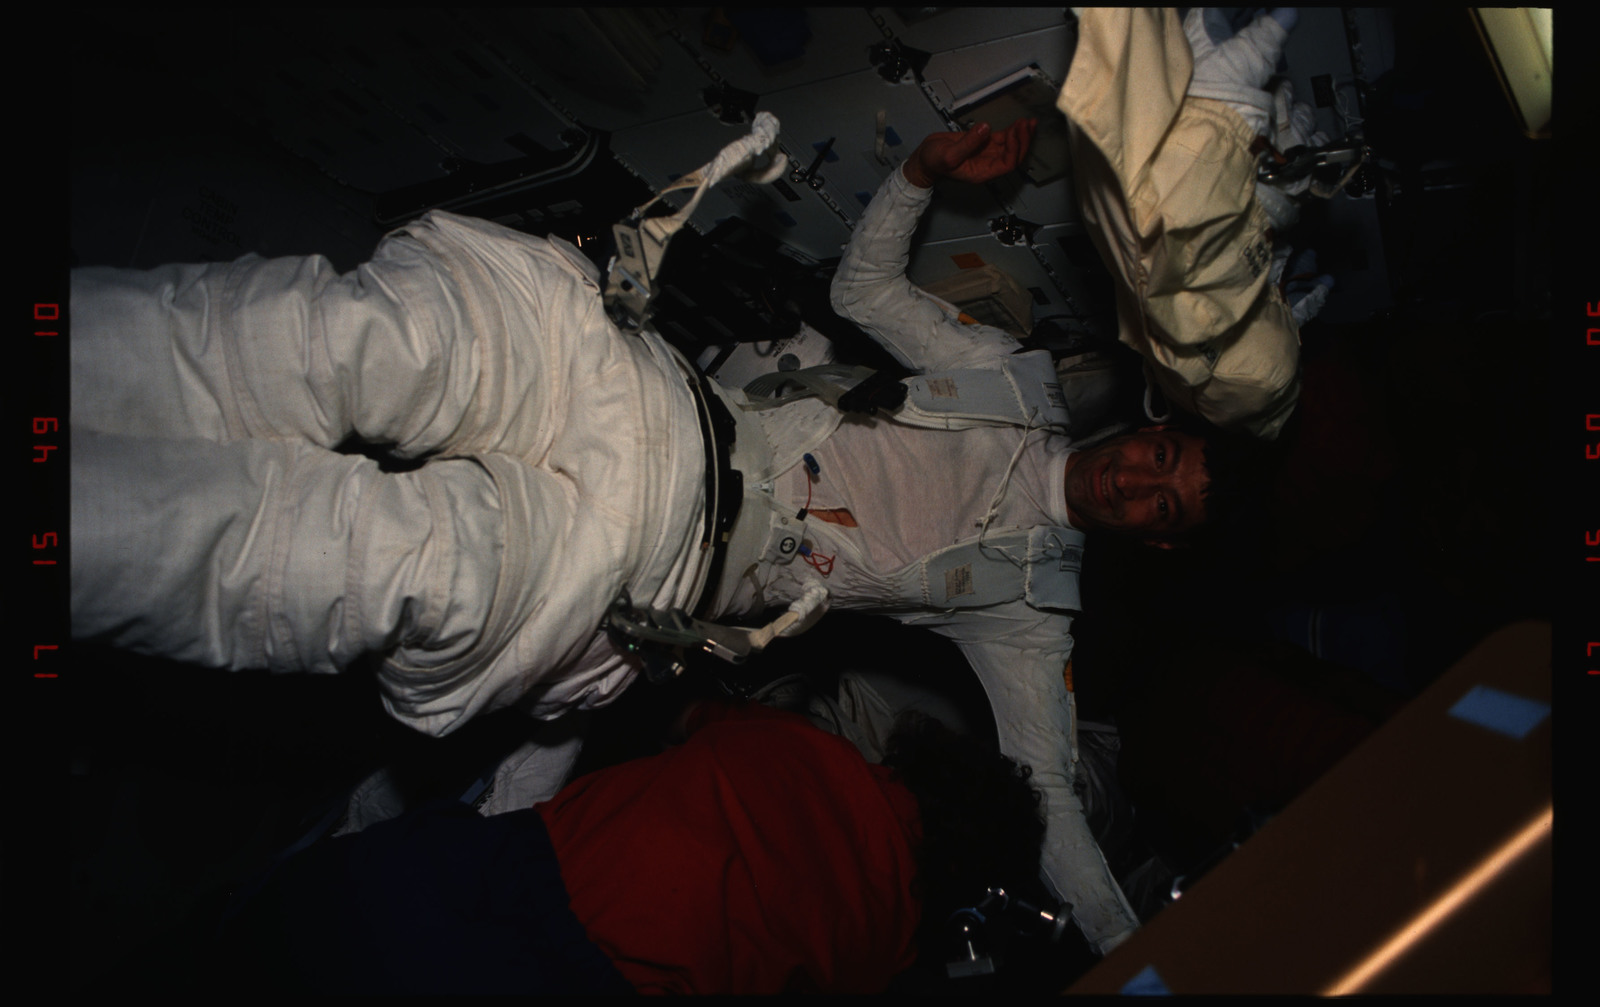 STS054-06-022 - STS-054 - EVA Crewmembers emerging from the air lock into the middeck.